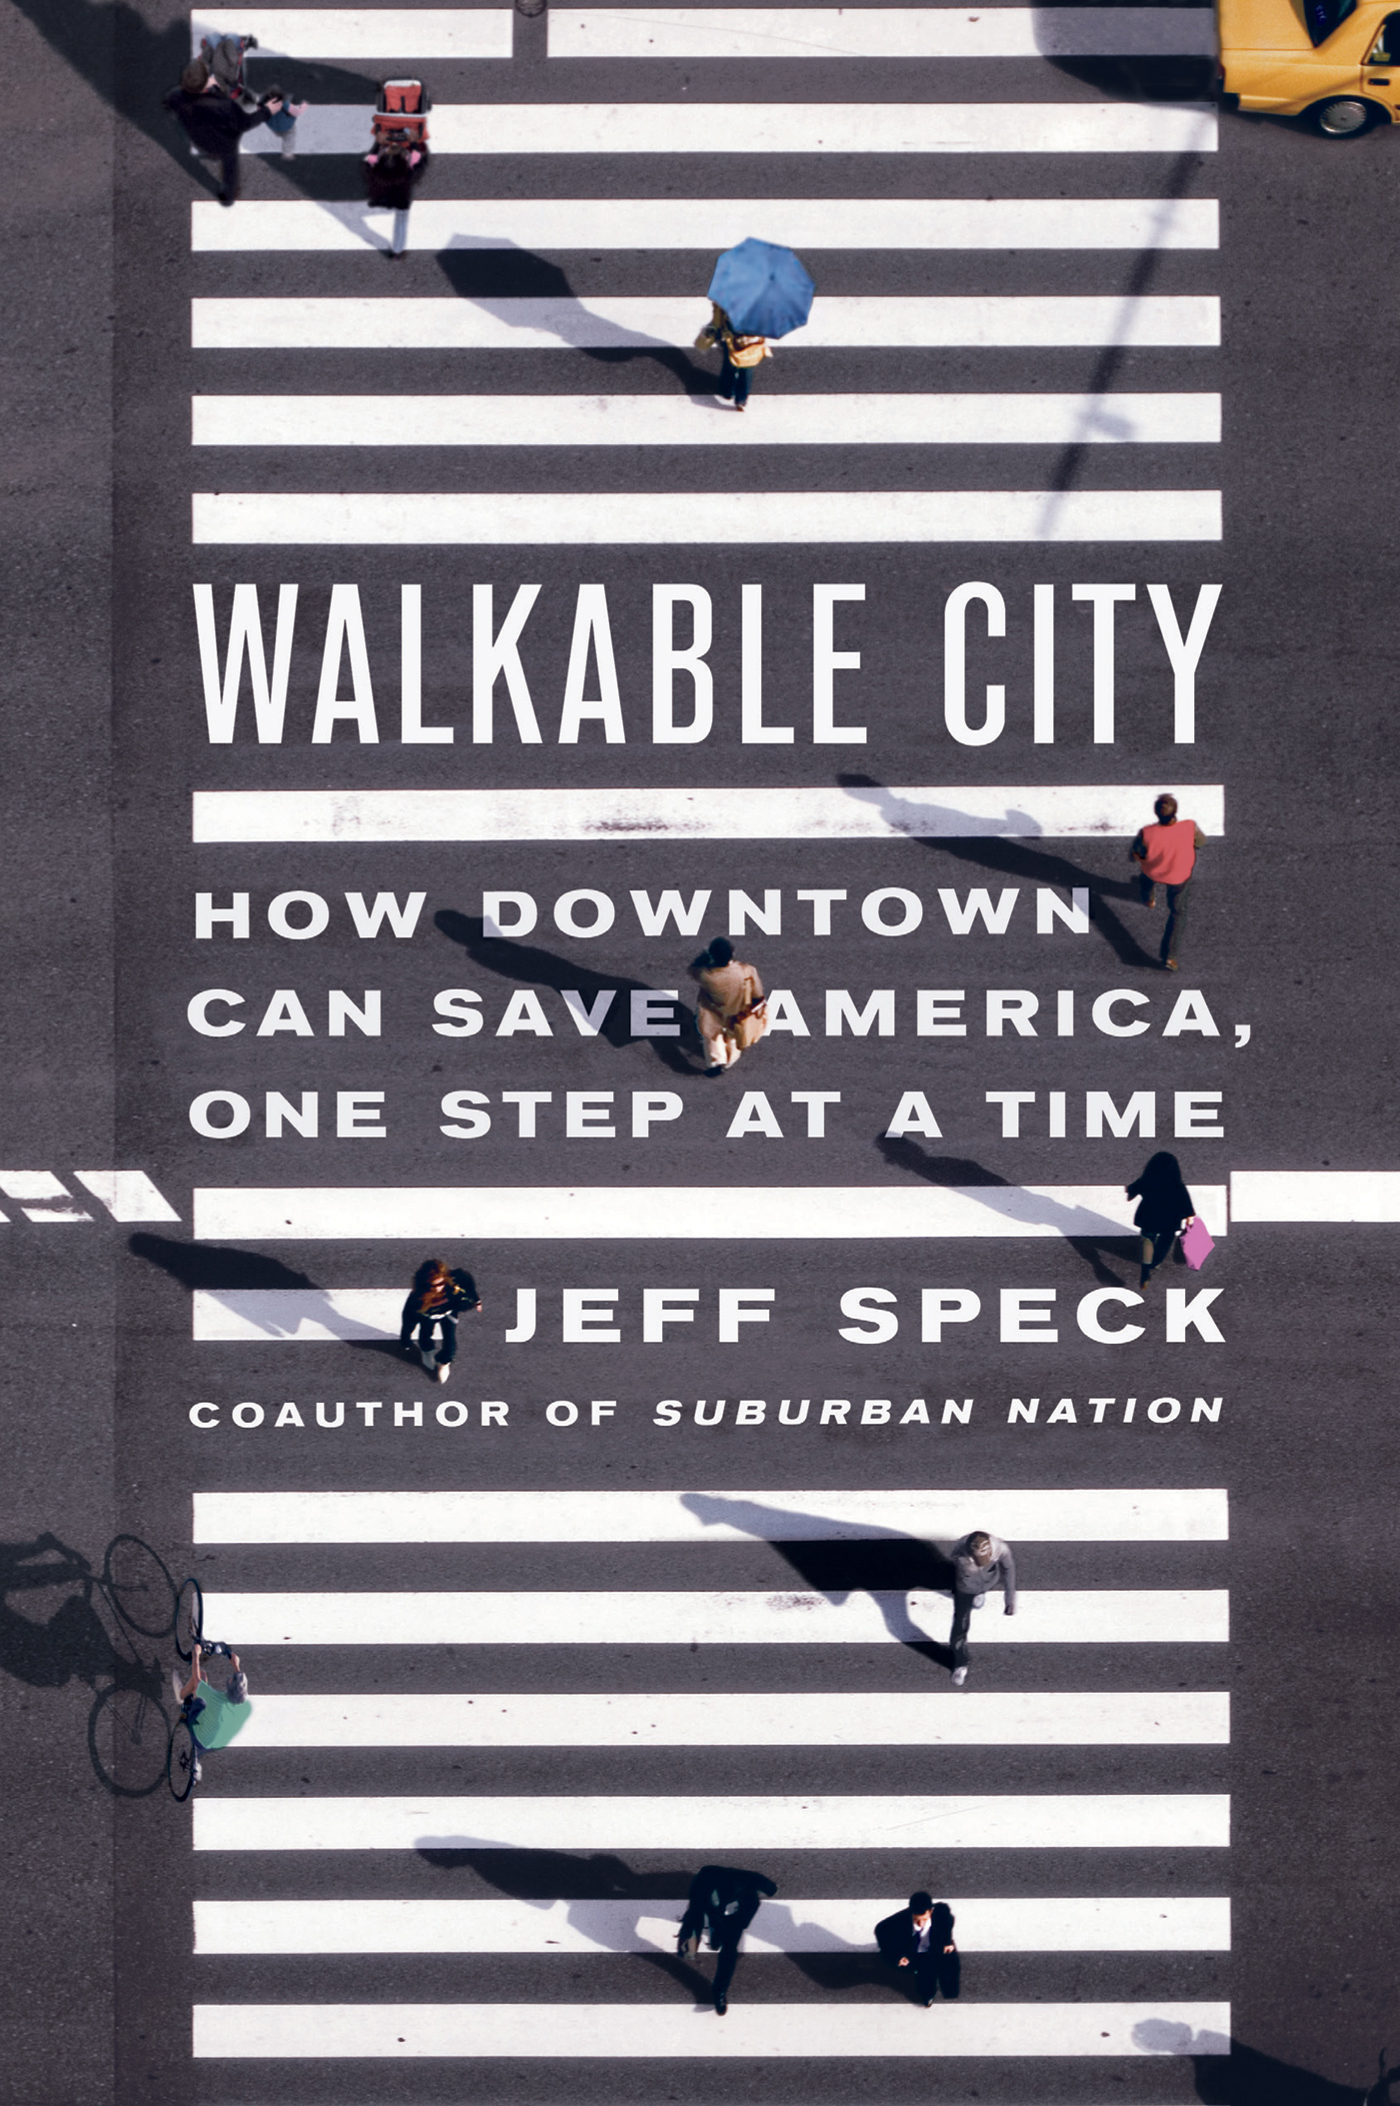 Walkable Cities